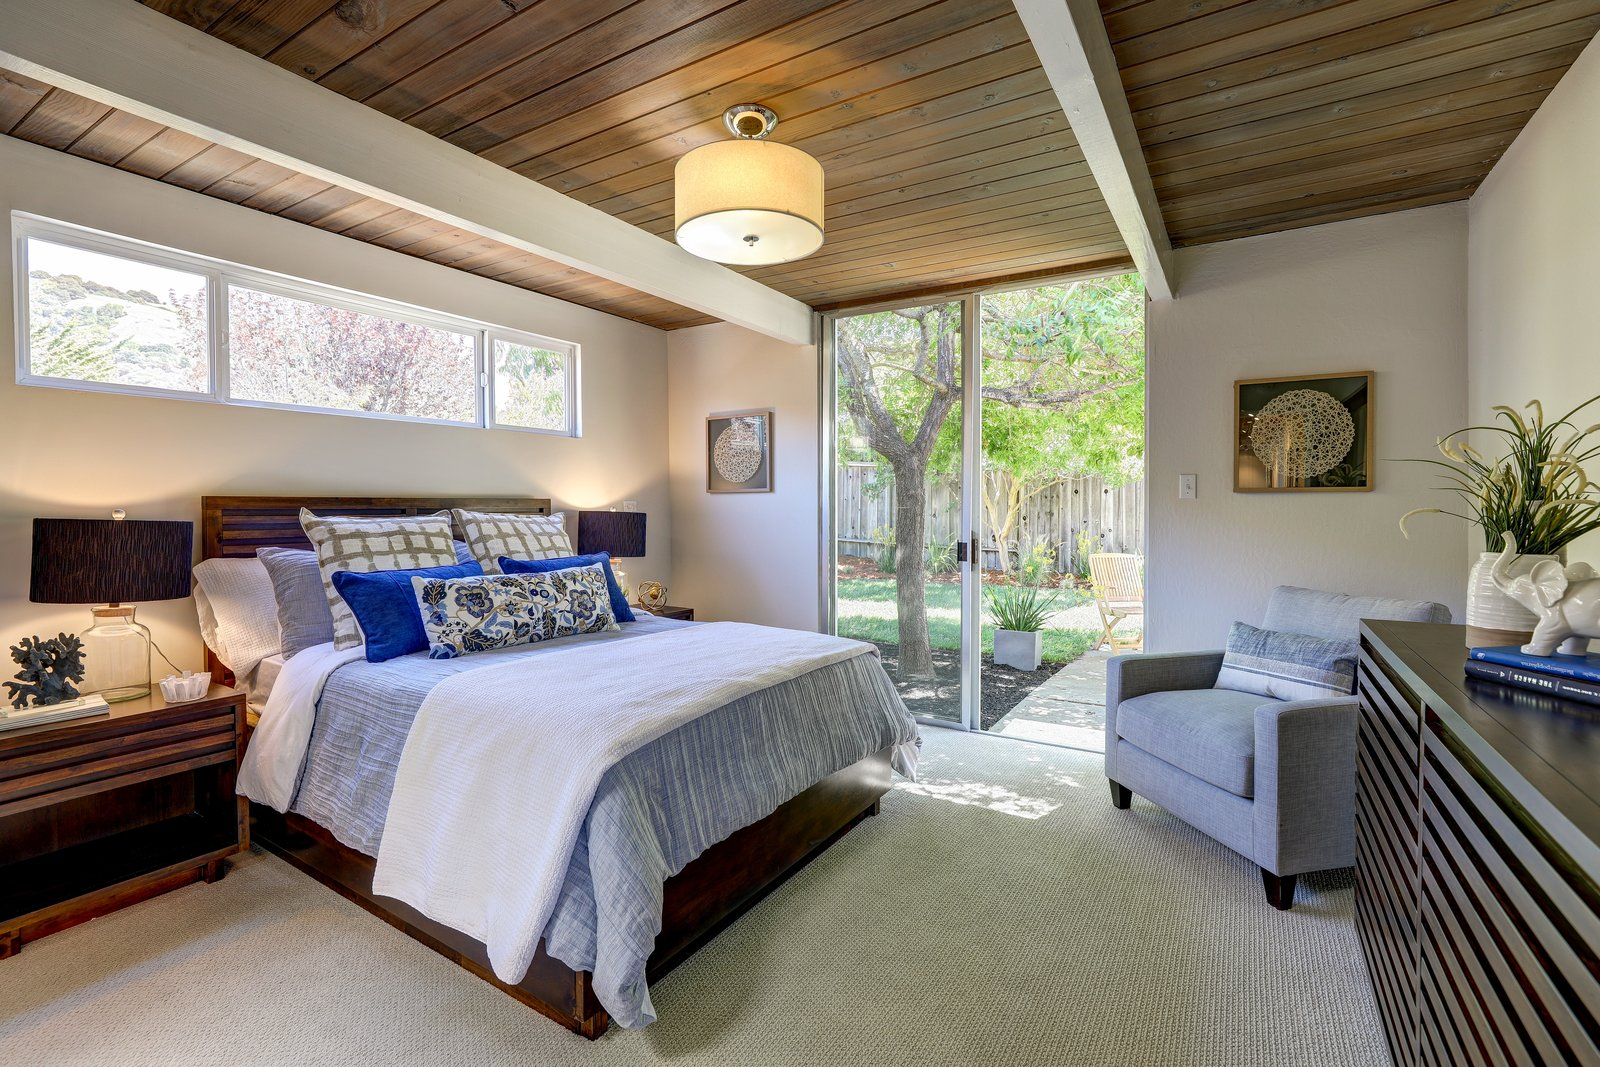 Bedroom, Carpet, Lamps, Floor, Chair, Ceiling, Bed, Dresser, and Night Stands The master suite has sliding doors that lead out to the exterior patio.     Bedroom Carpet Chair Ceiling Photos from A Bay Area Eichler With Custom Updates Hits the Market at $1.29M